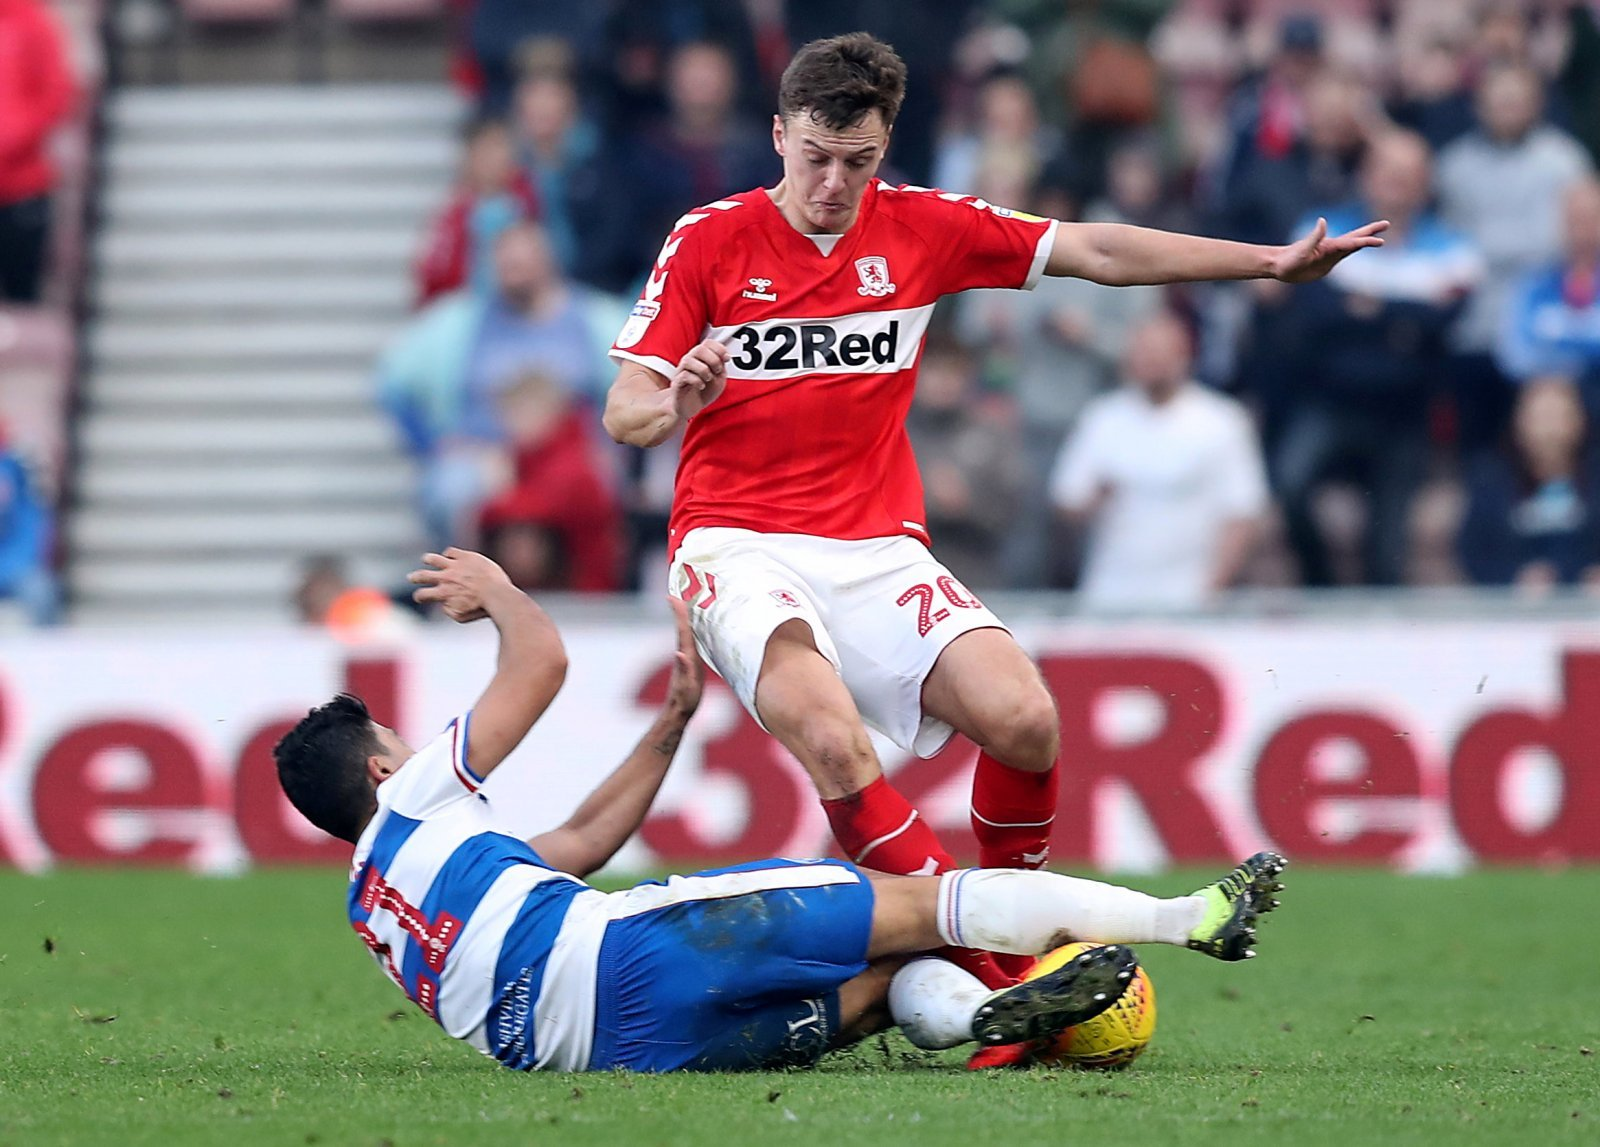 Middlesbrough: Dael Fry returns to squad for the visit of Millwall